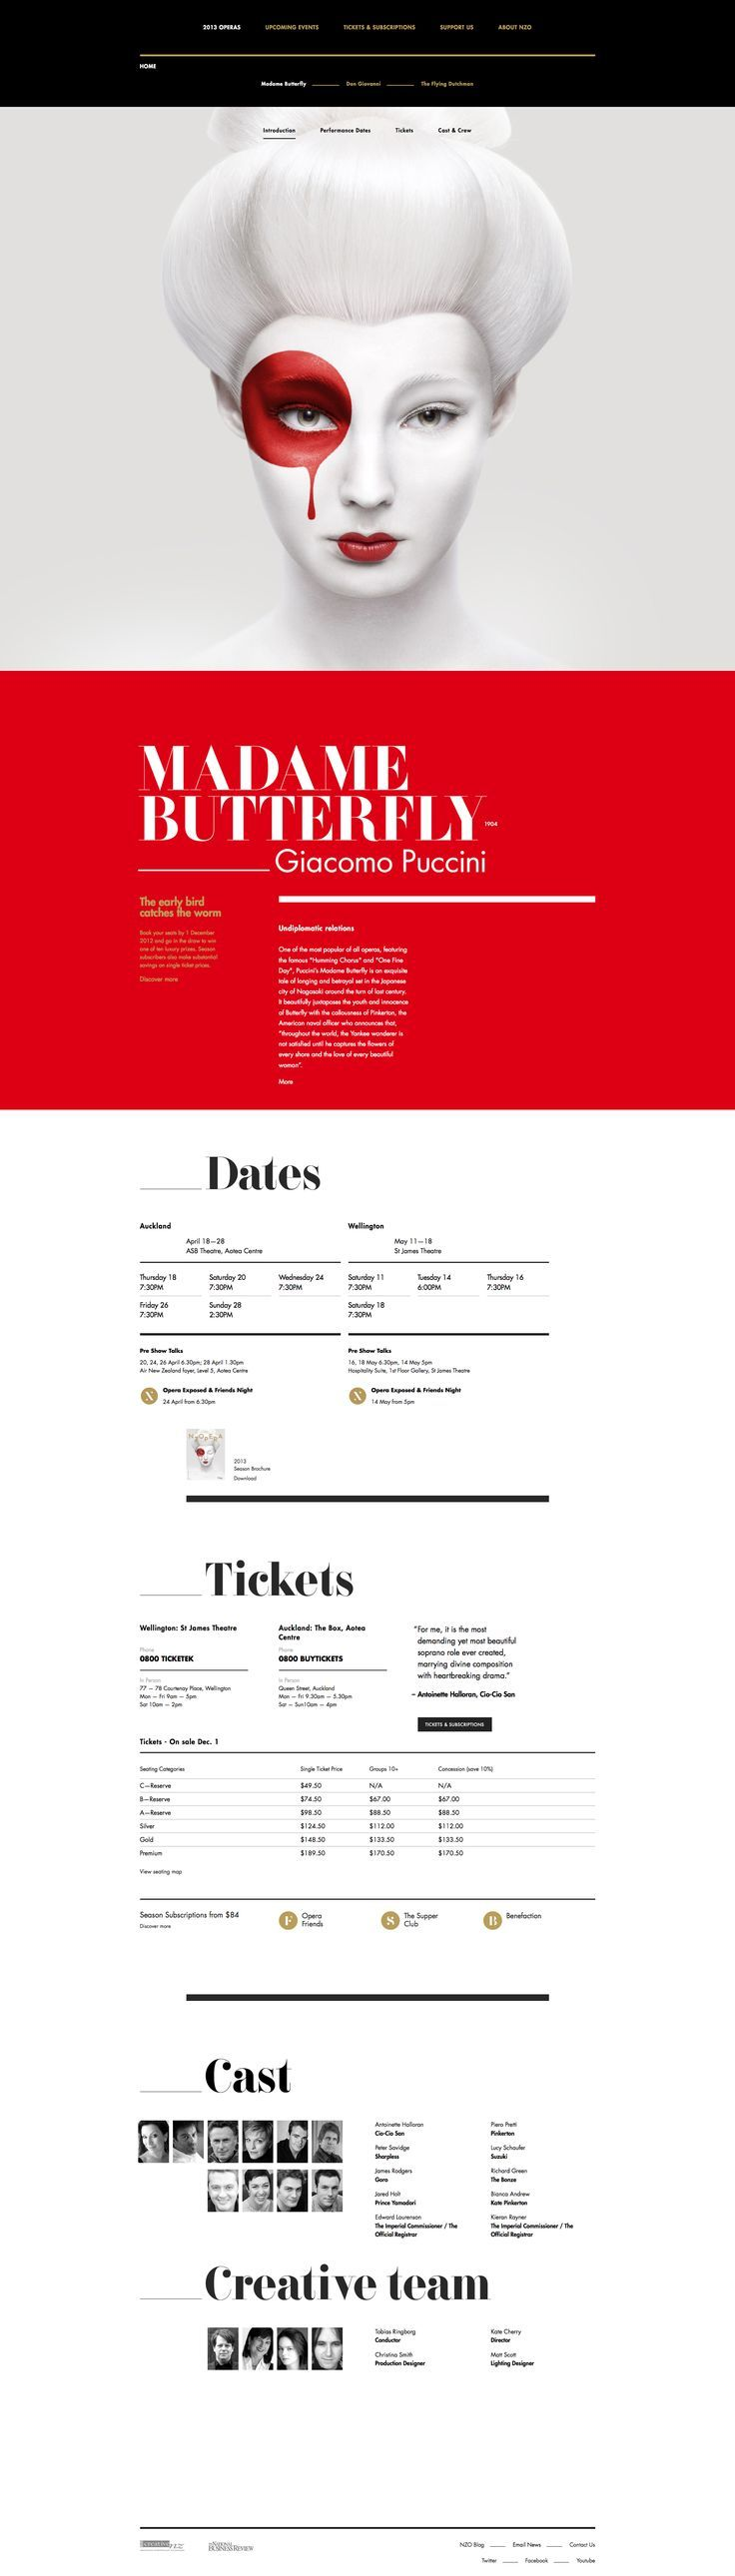 """web design   New Zealand's Best Interactive Design. """"NBR NZ Opera by Sons & Co."""" - #interactive #web #design. If you like UX, design, or design thinking, check out theuxblog.com podcast https://itunes.apple.com/us/podcast/ux-blog-user-experience-design/id1127946001?mt=2"""